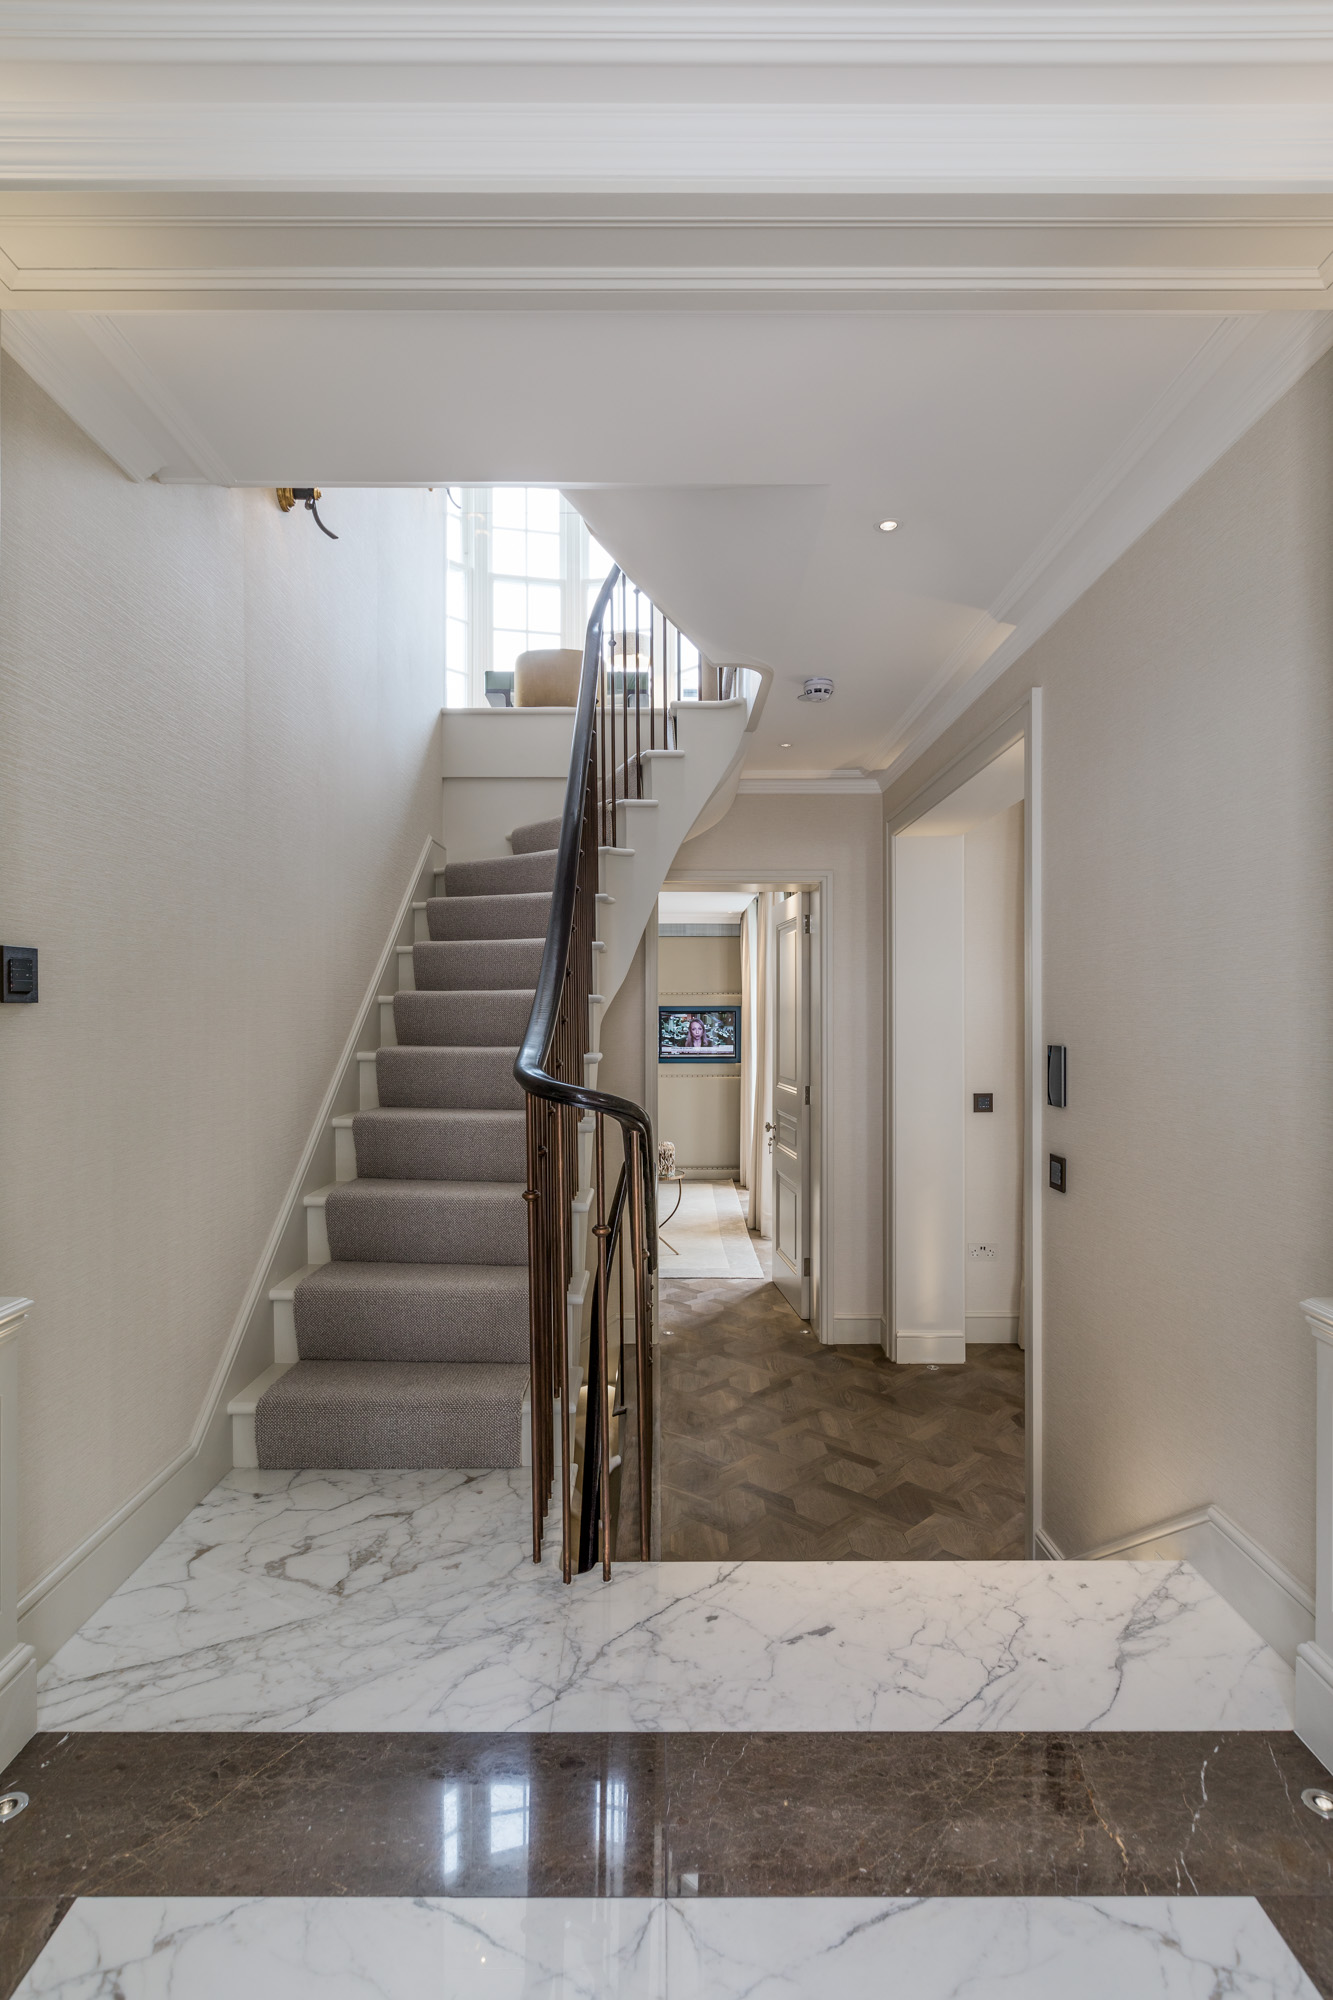 jonathan bond, interior photographer, stairs and bannisters, chelsea, london